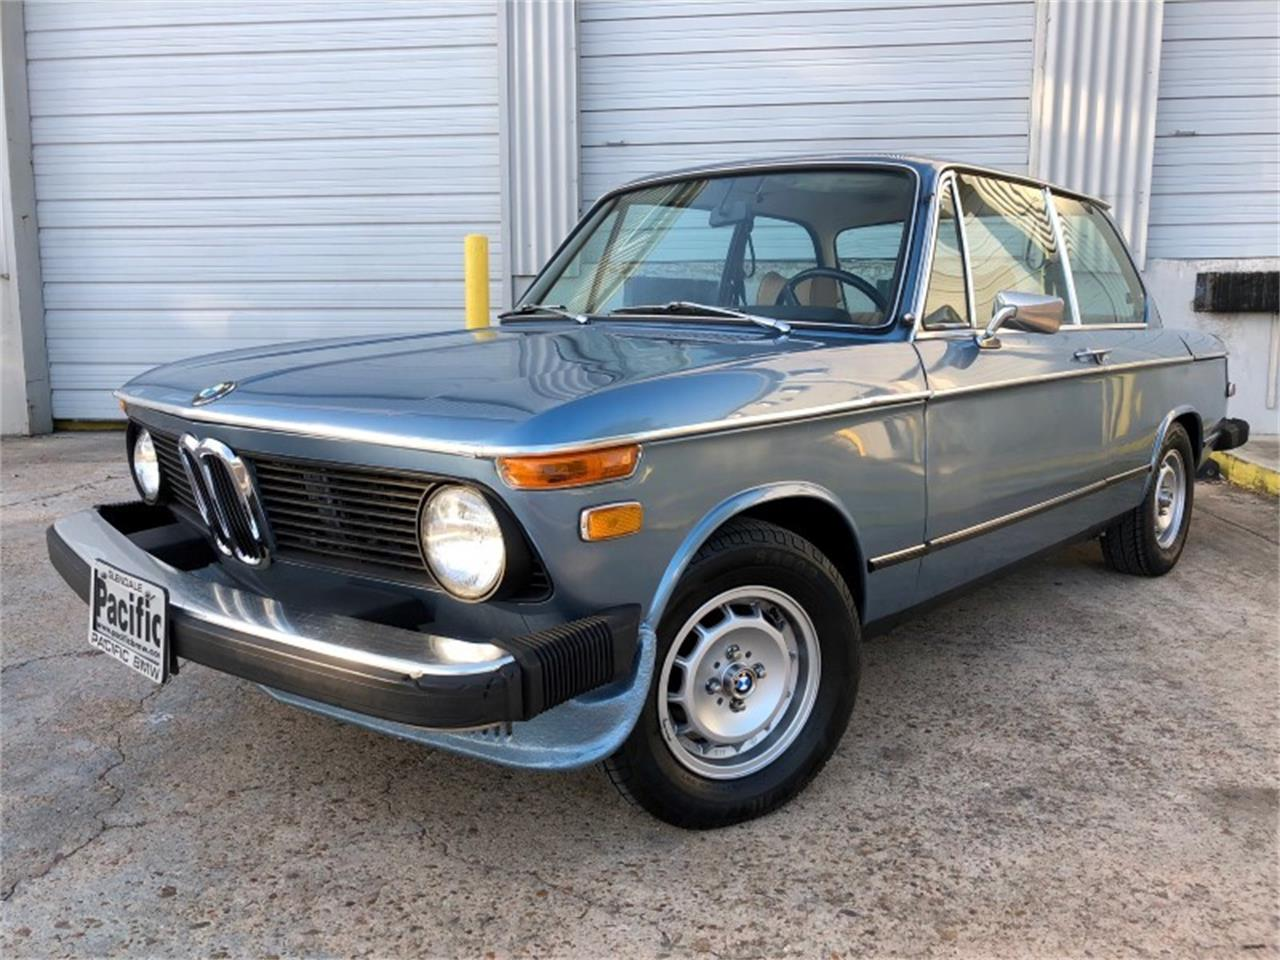 Bmw 2002 For Sale >> 1975 Bmw 2002 For Sale Classiccars Com Cc 1210379